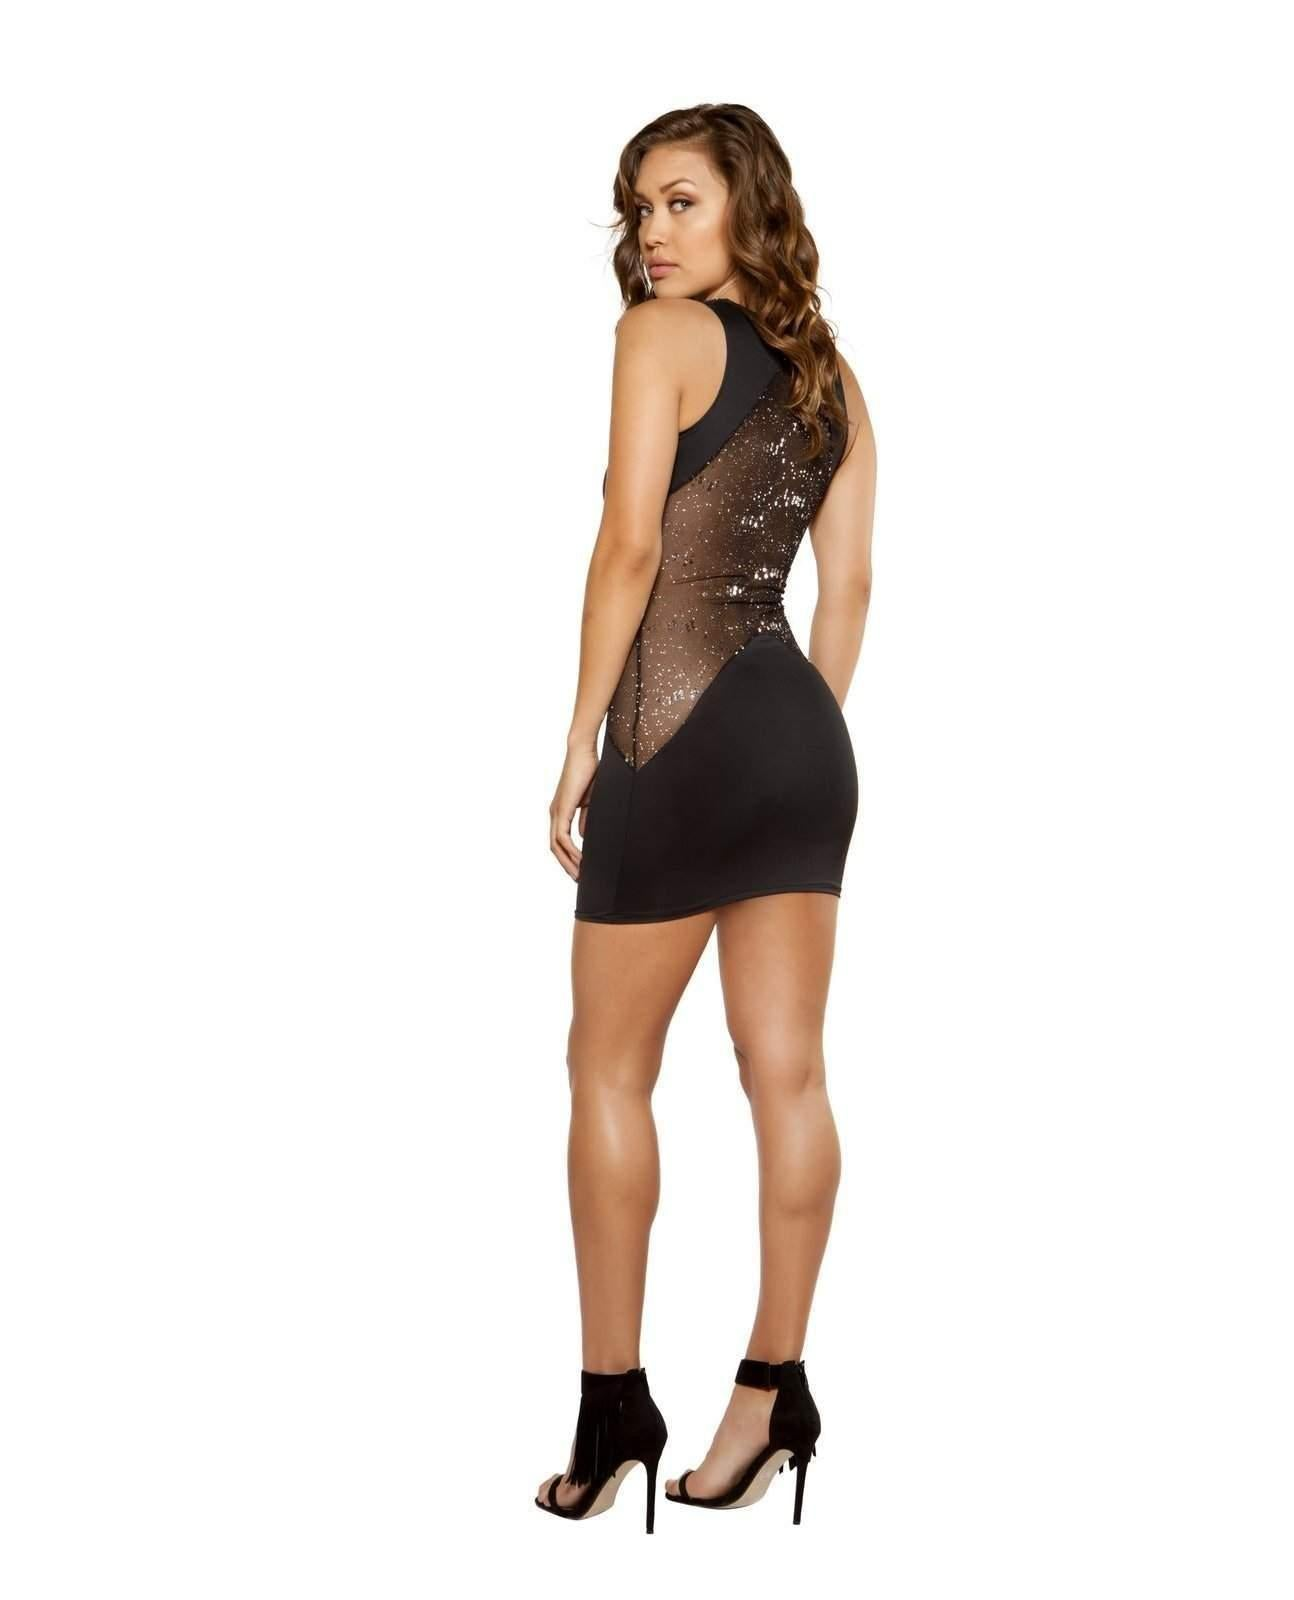 Cutout Dress with Glitter Sheer Mesh club wear Size SmallColor BlackNakees